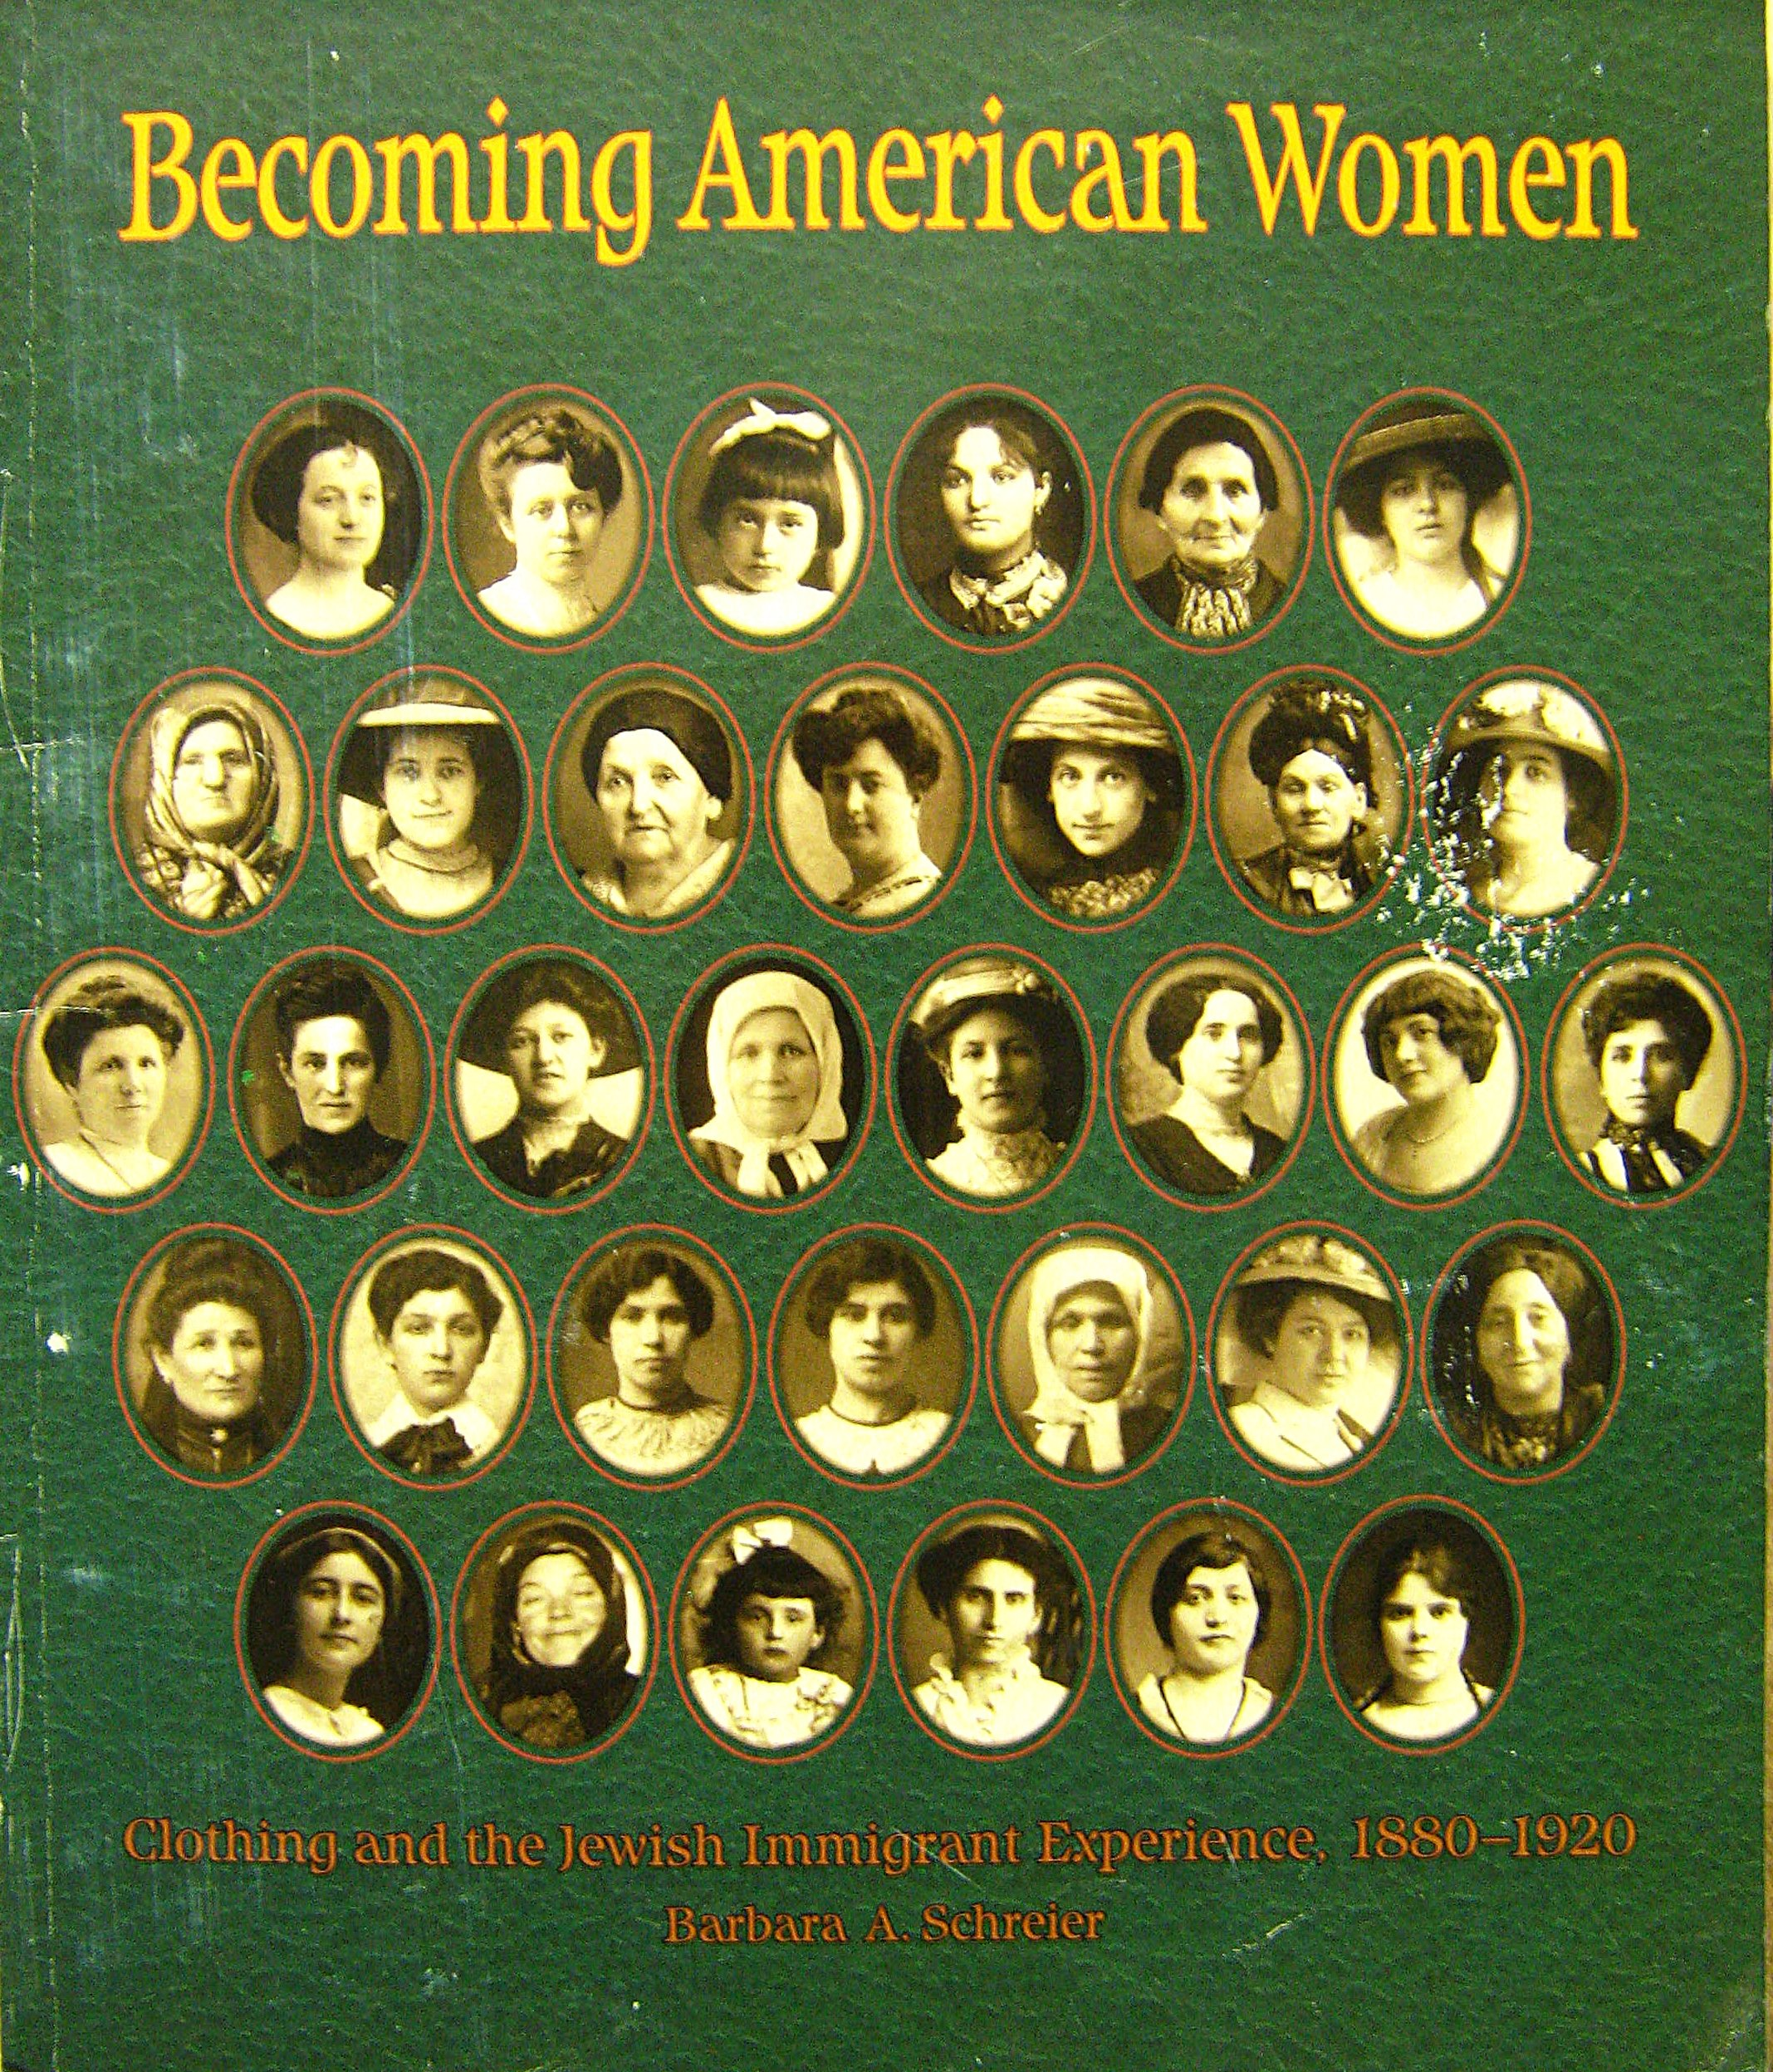 Becoming American Women: Clothing and the Jewish Immigrant Experience, 1880-1920, Schreier, Barbara A.